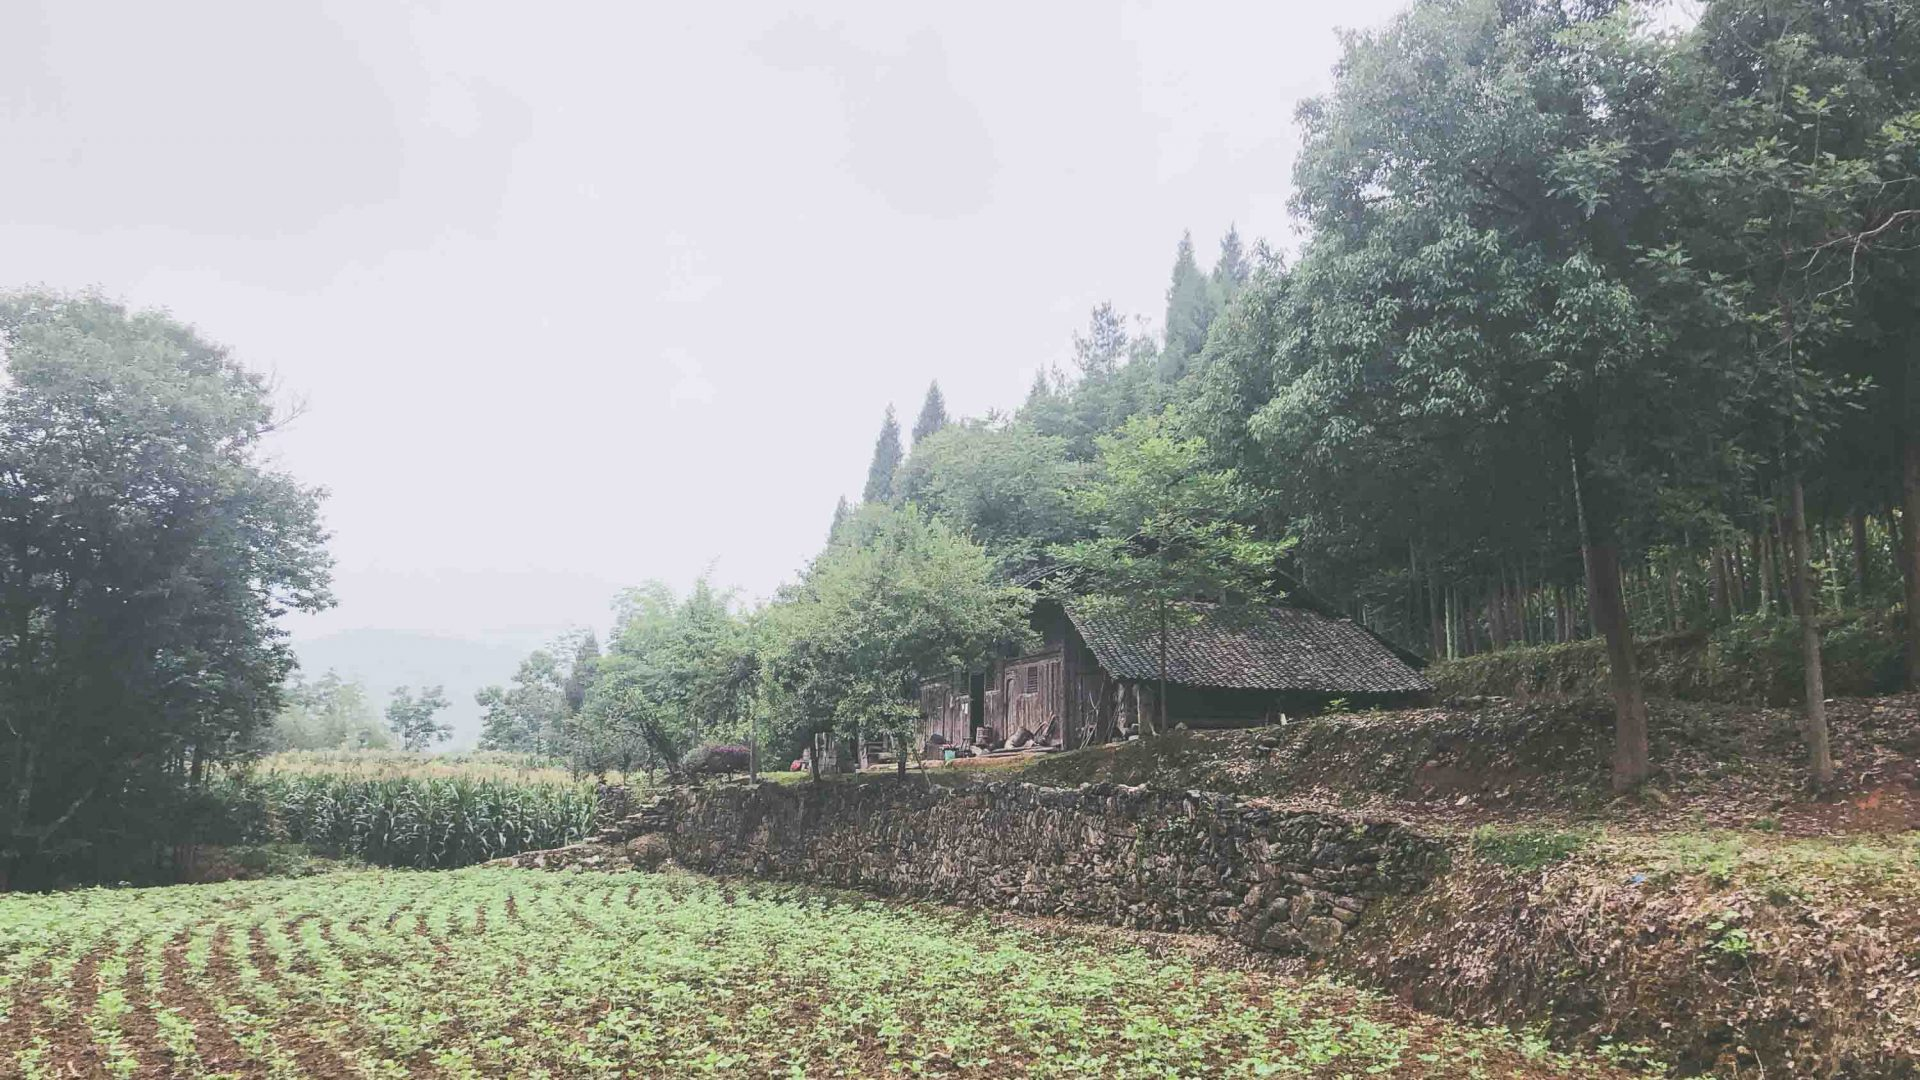 A traditional farming home in China's Hunan Province.